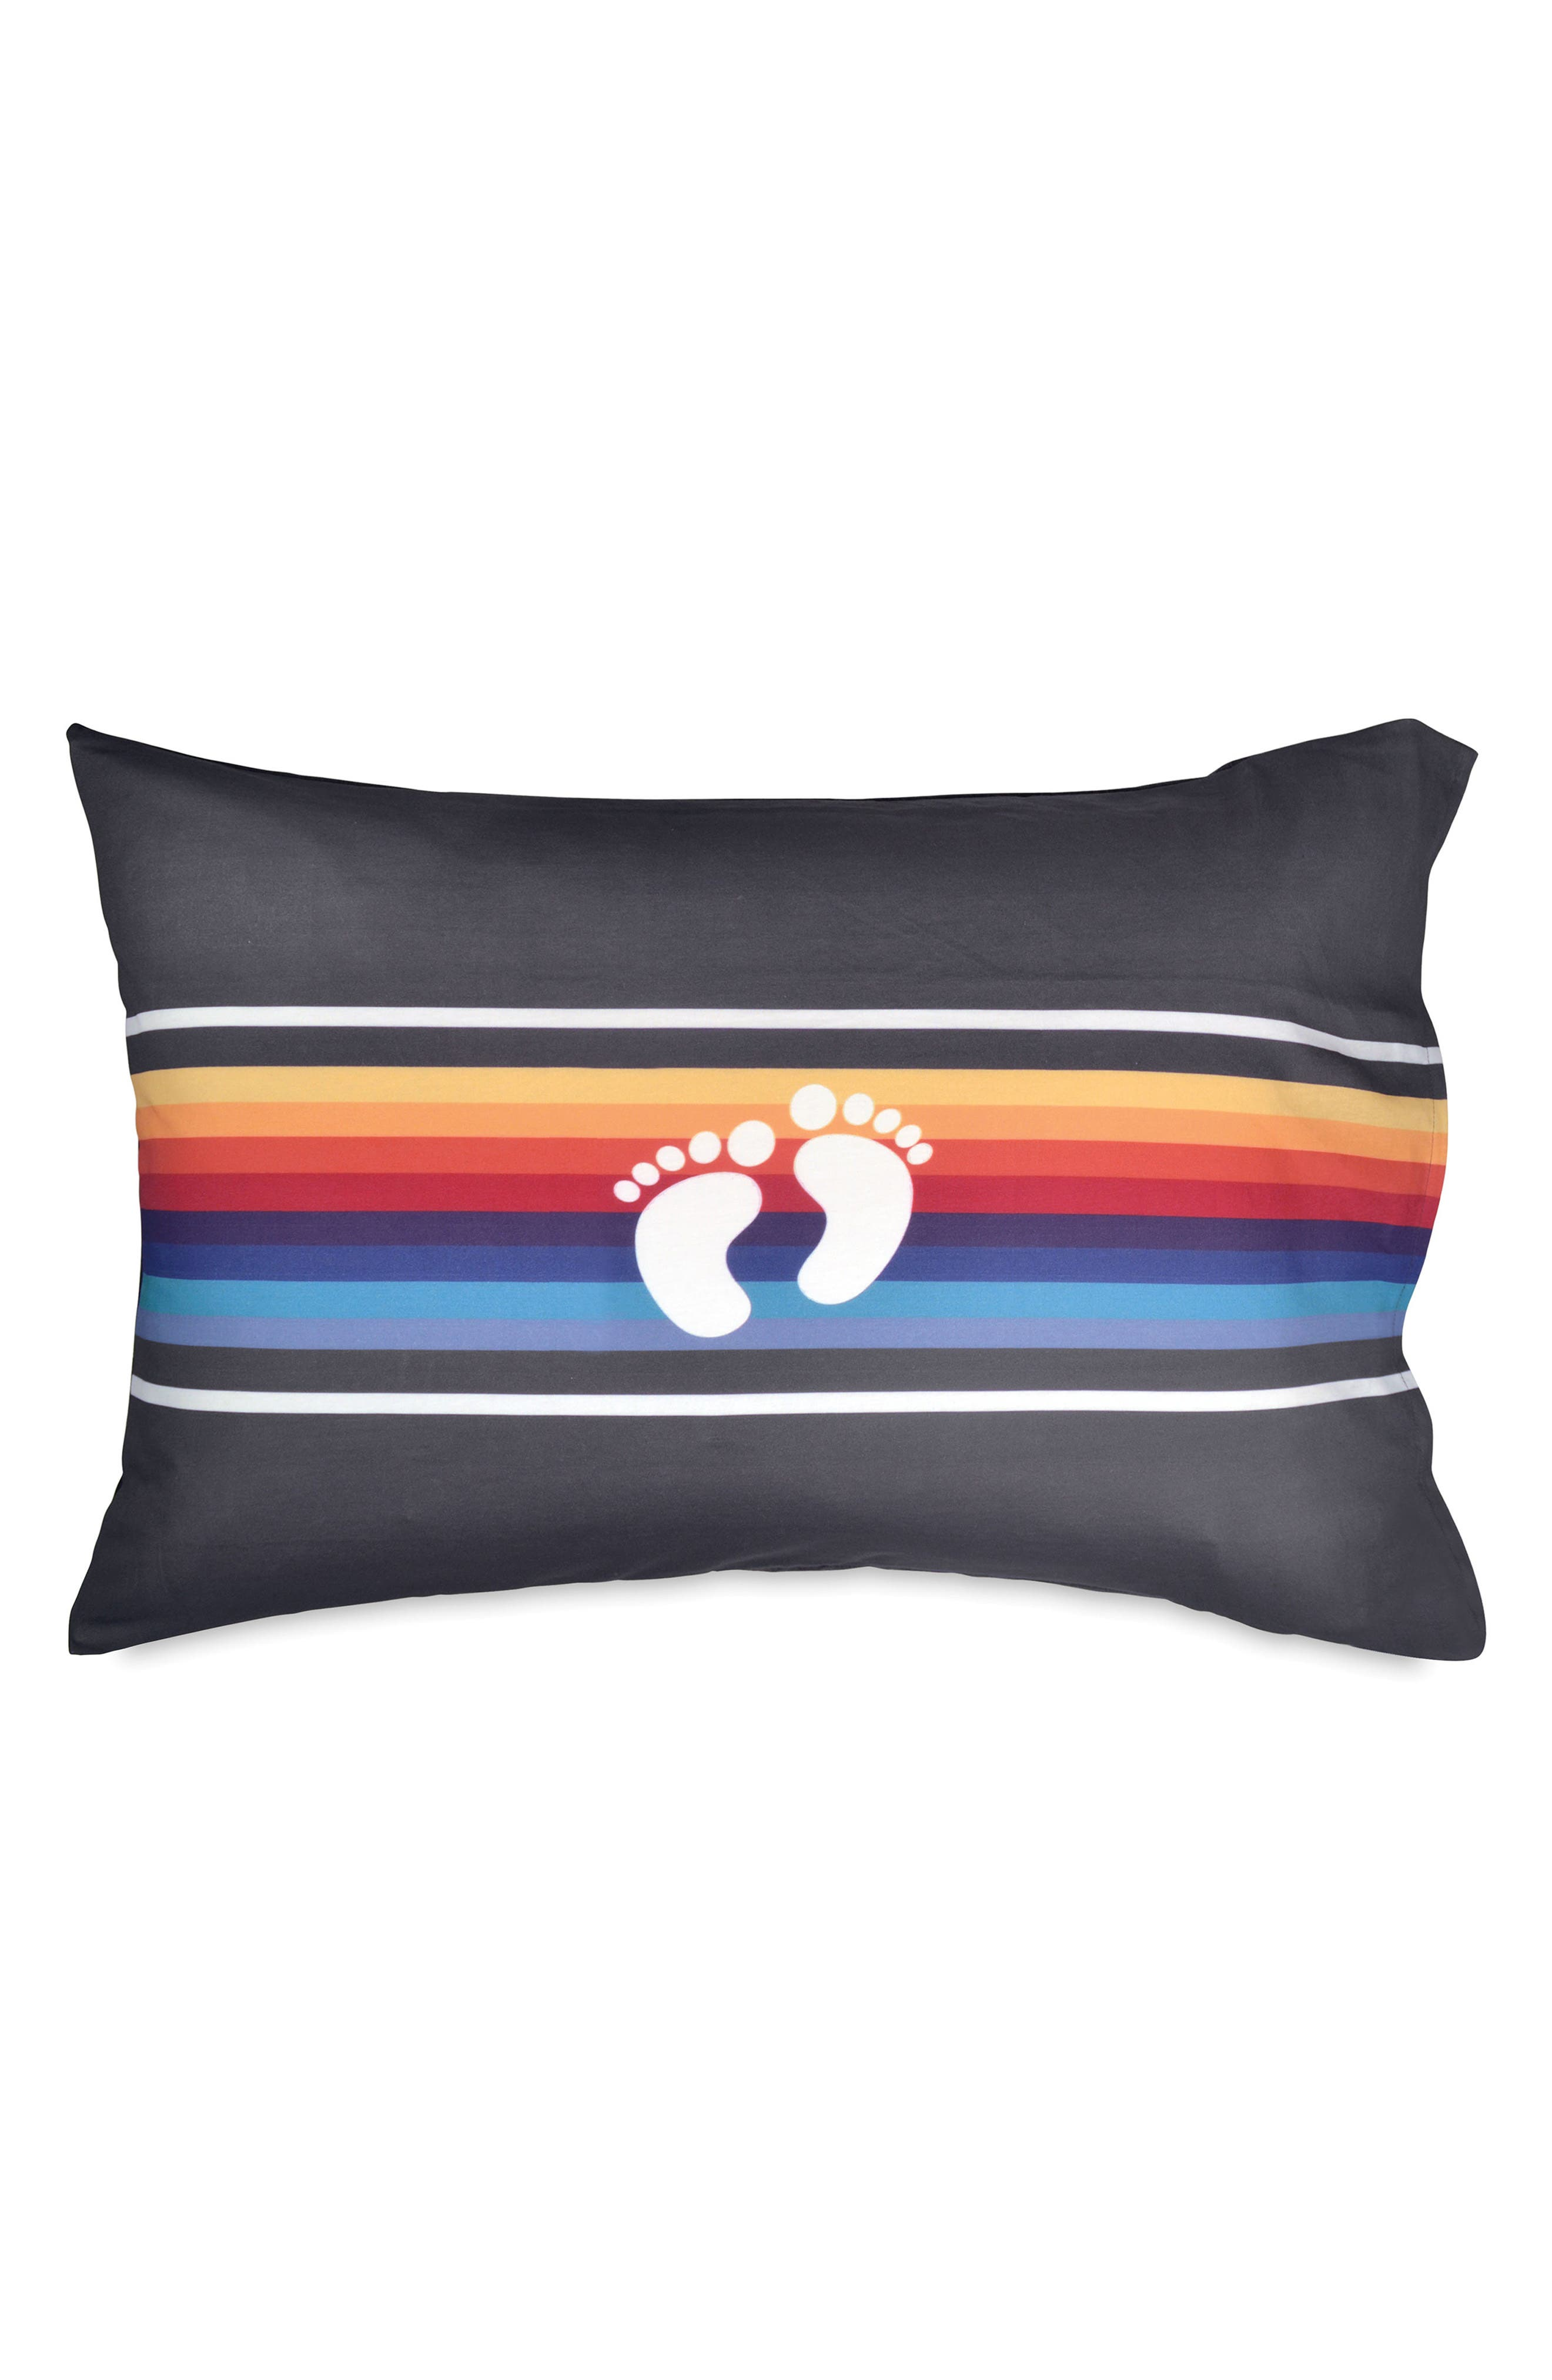 Stripe Pillowcase,                             Main thumbnail 1, color,                             400